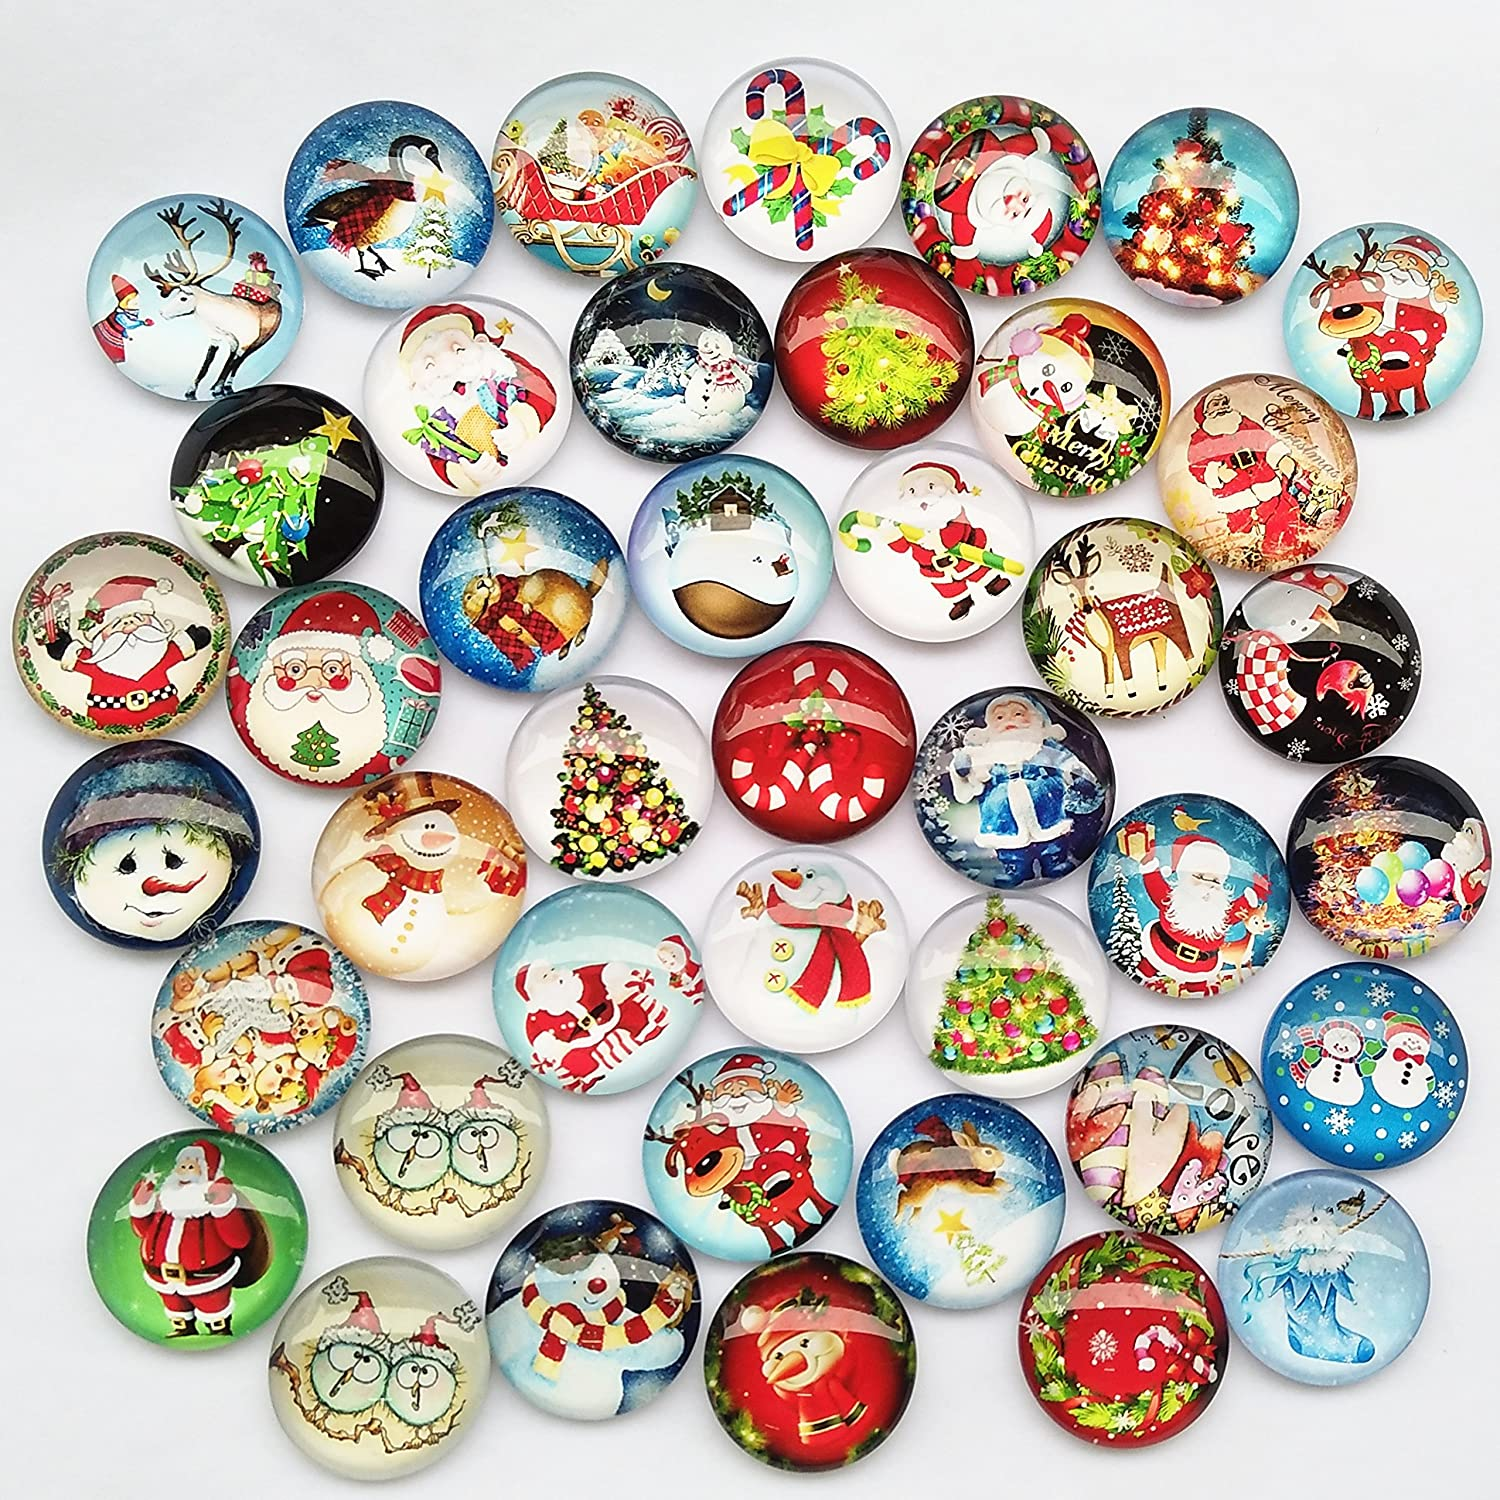 Assorted Styles Christmas Snow Man Tree Claus Jingle Bell Glass Button Flatback Flat Backs Button Glass Cameo Cabochon Phonecover Scrapbooking Diy Craft 1 Libiline  20pcs 25mm